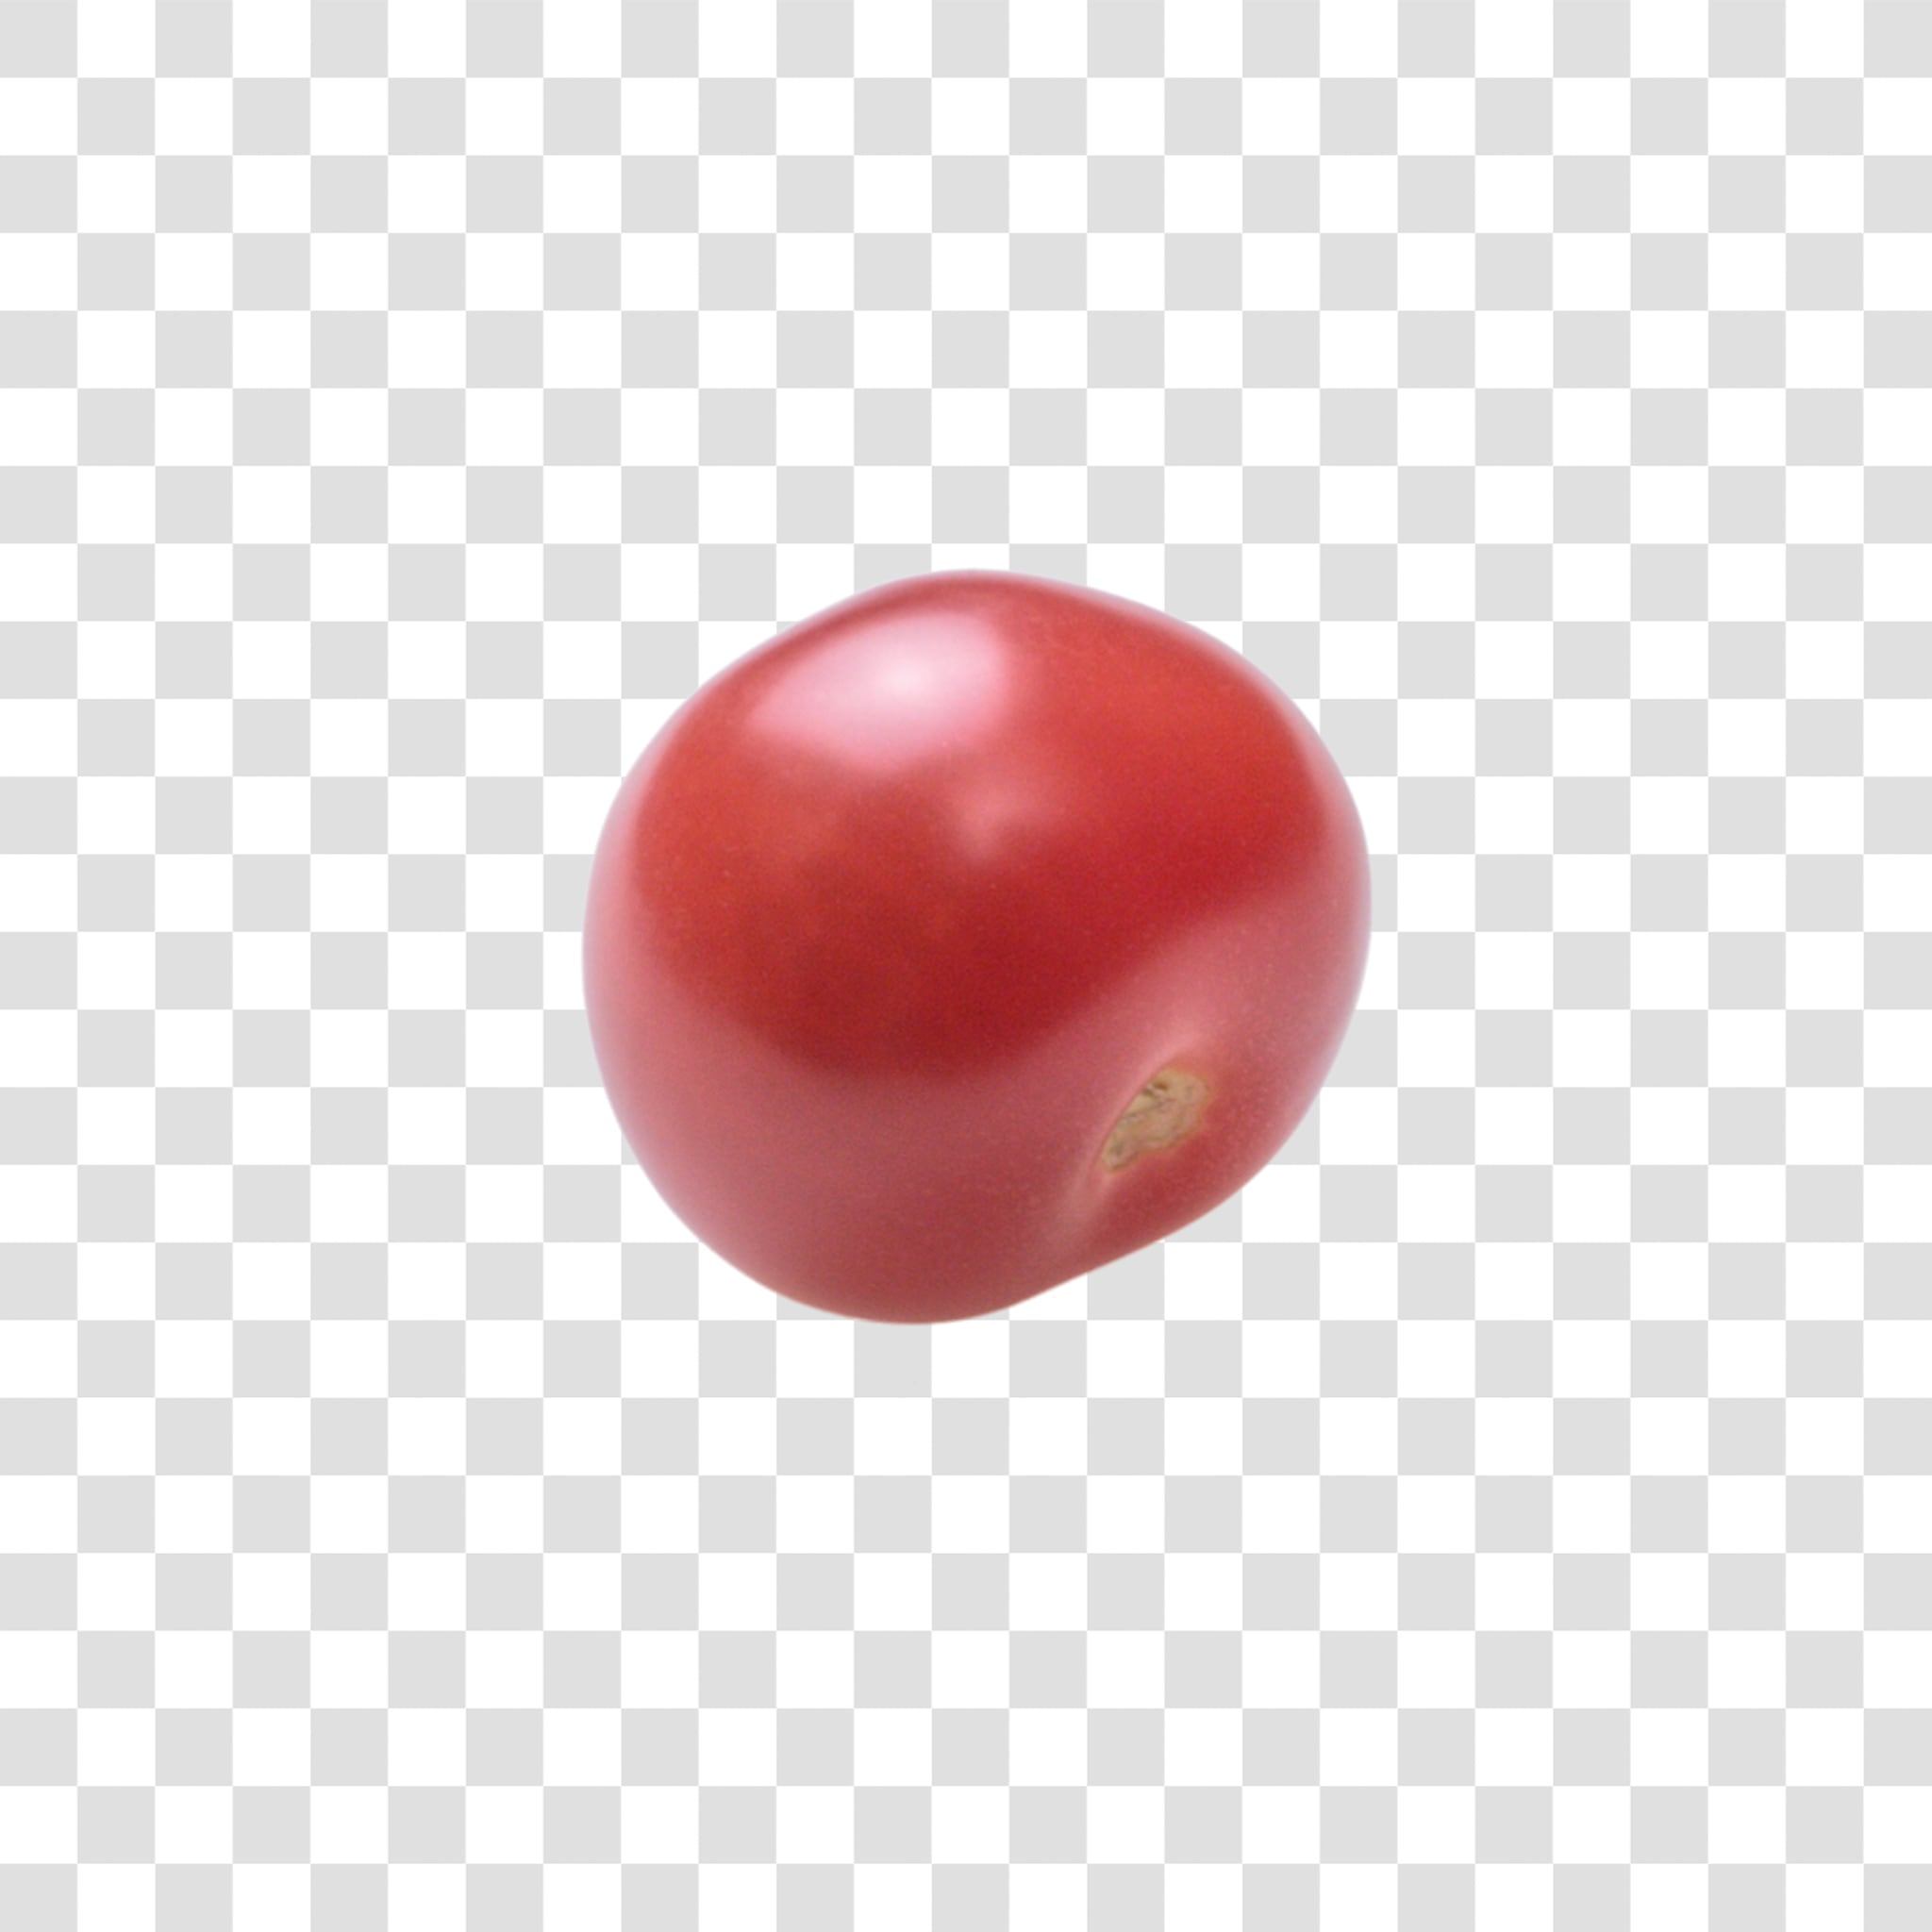 Tomato image with transparent background